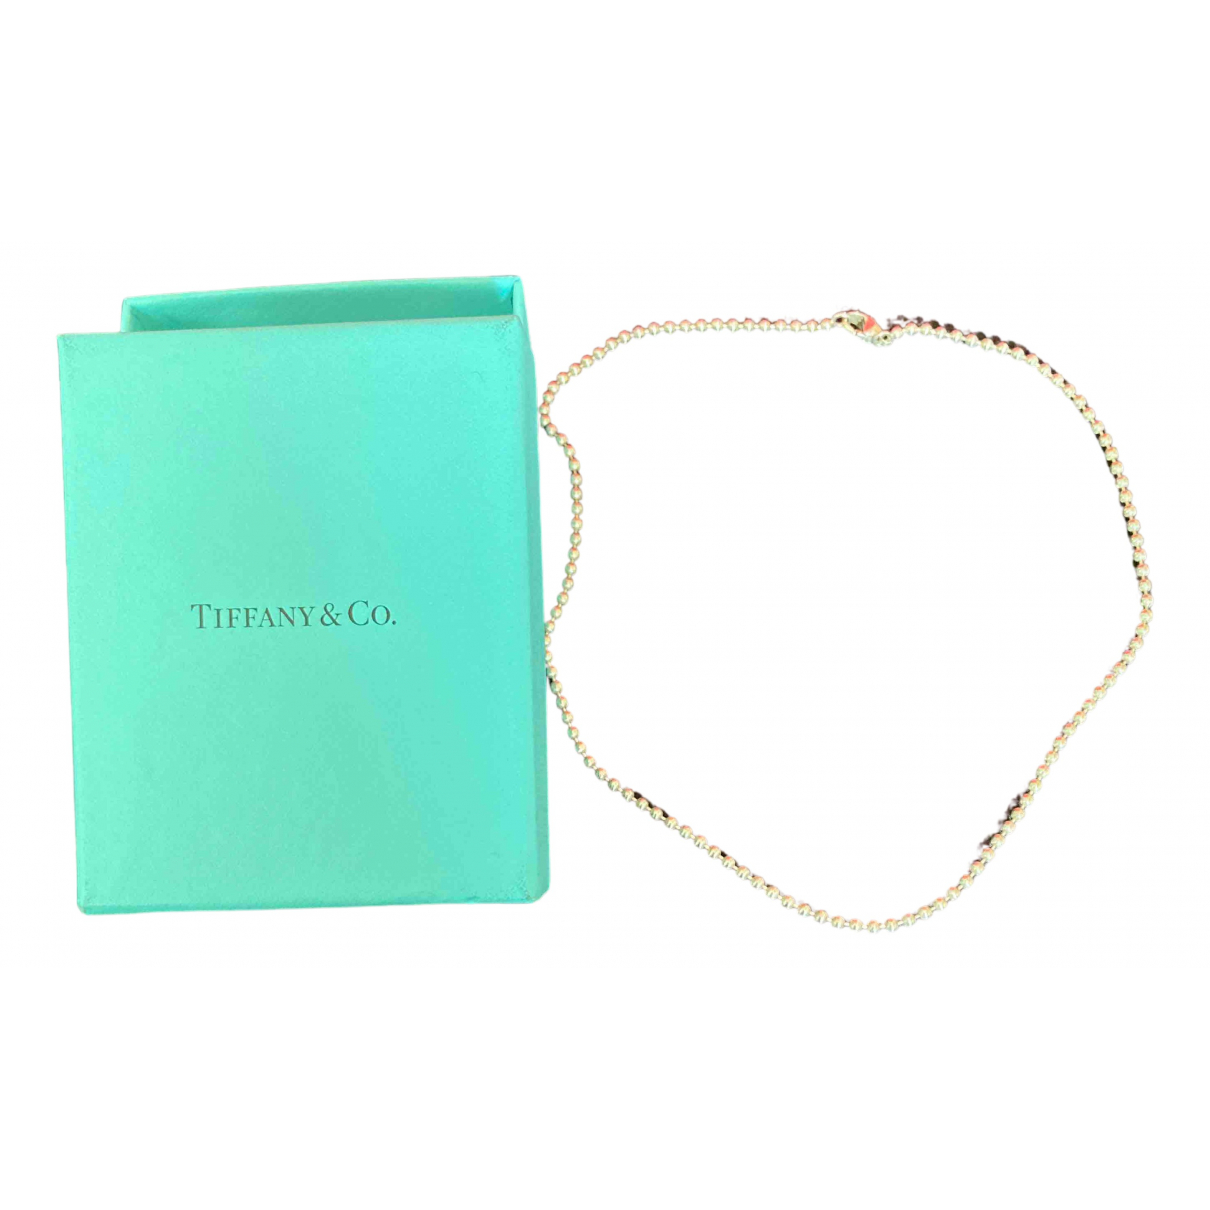 Tiffany & Co N Silver Silver necklace for Women N